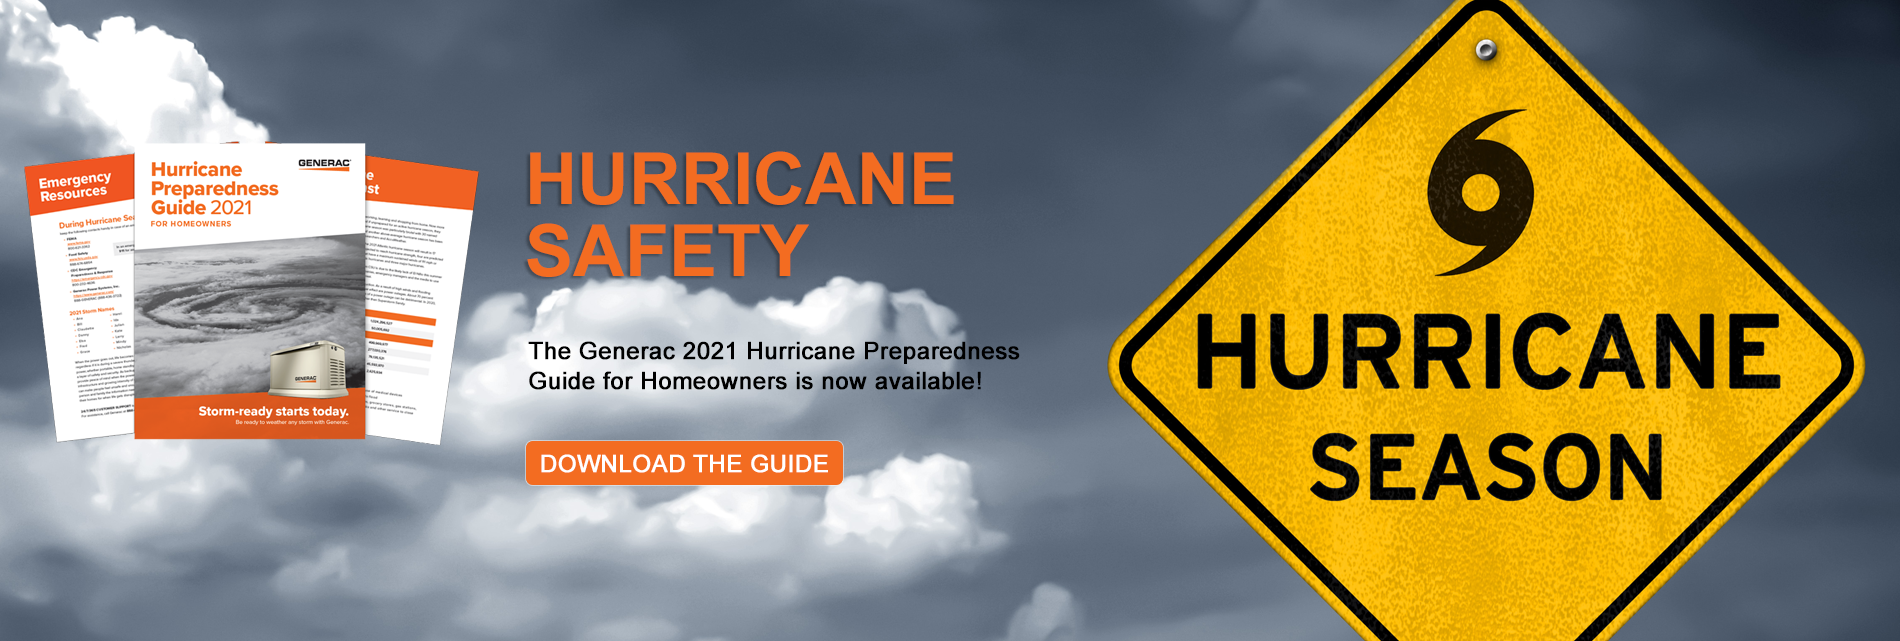 Hurricane Safety - Get the Hurricane Preparedness Guide